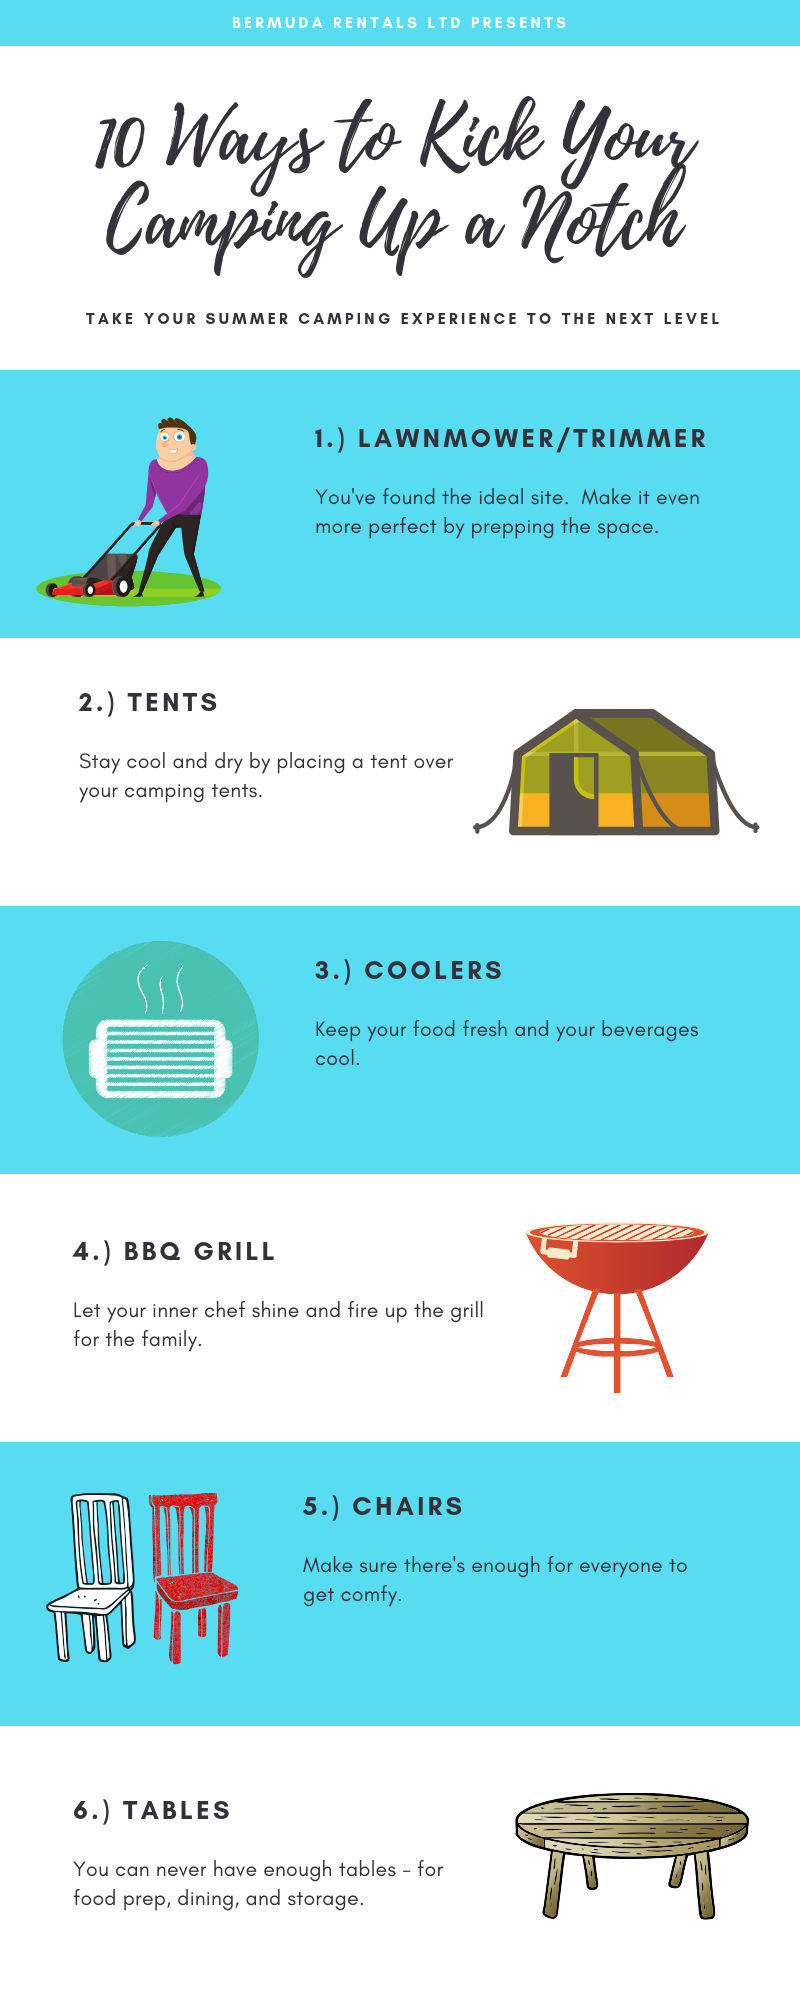 10 Ways to Kick Your Camping Up a Notch